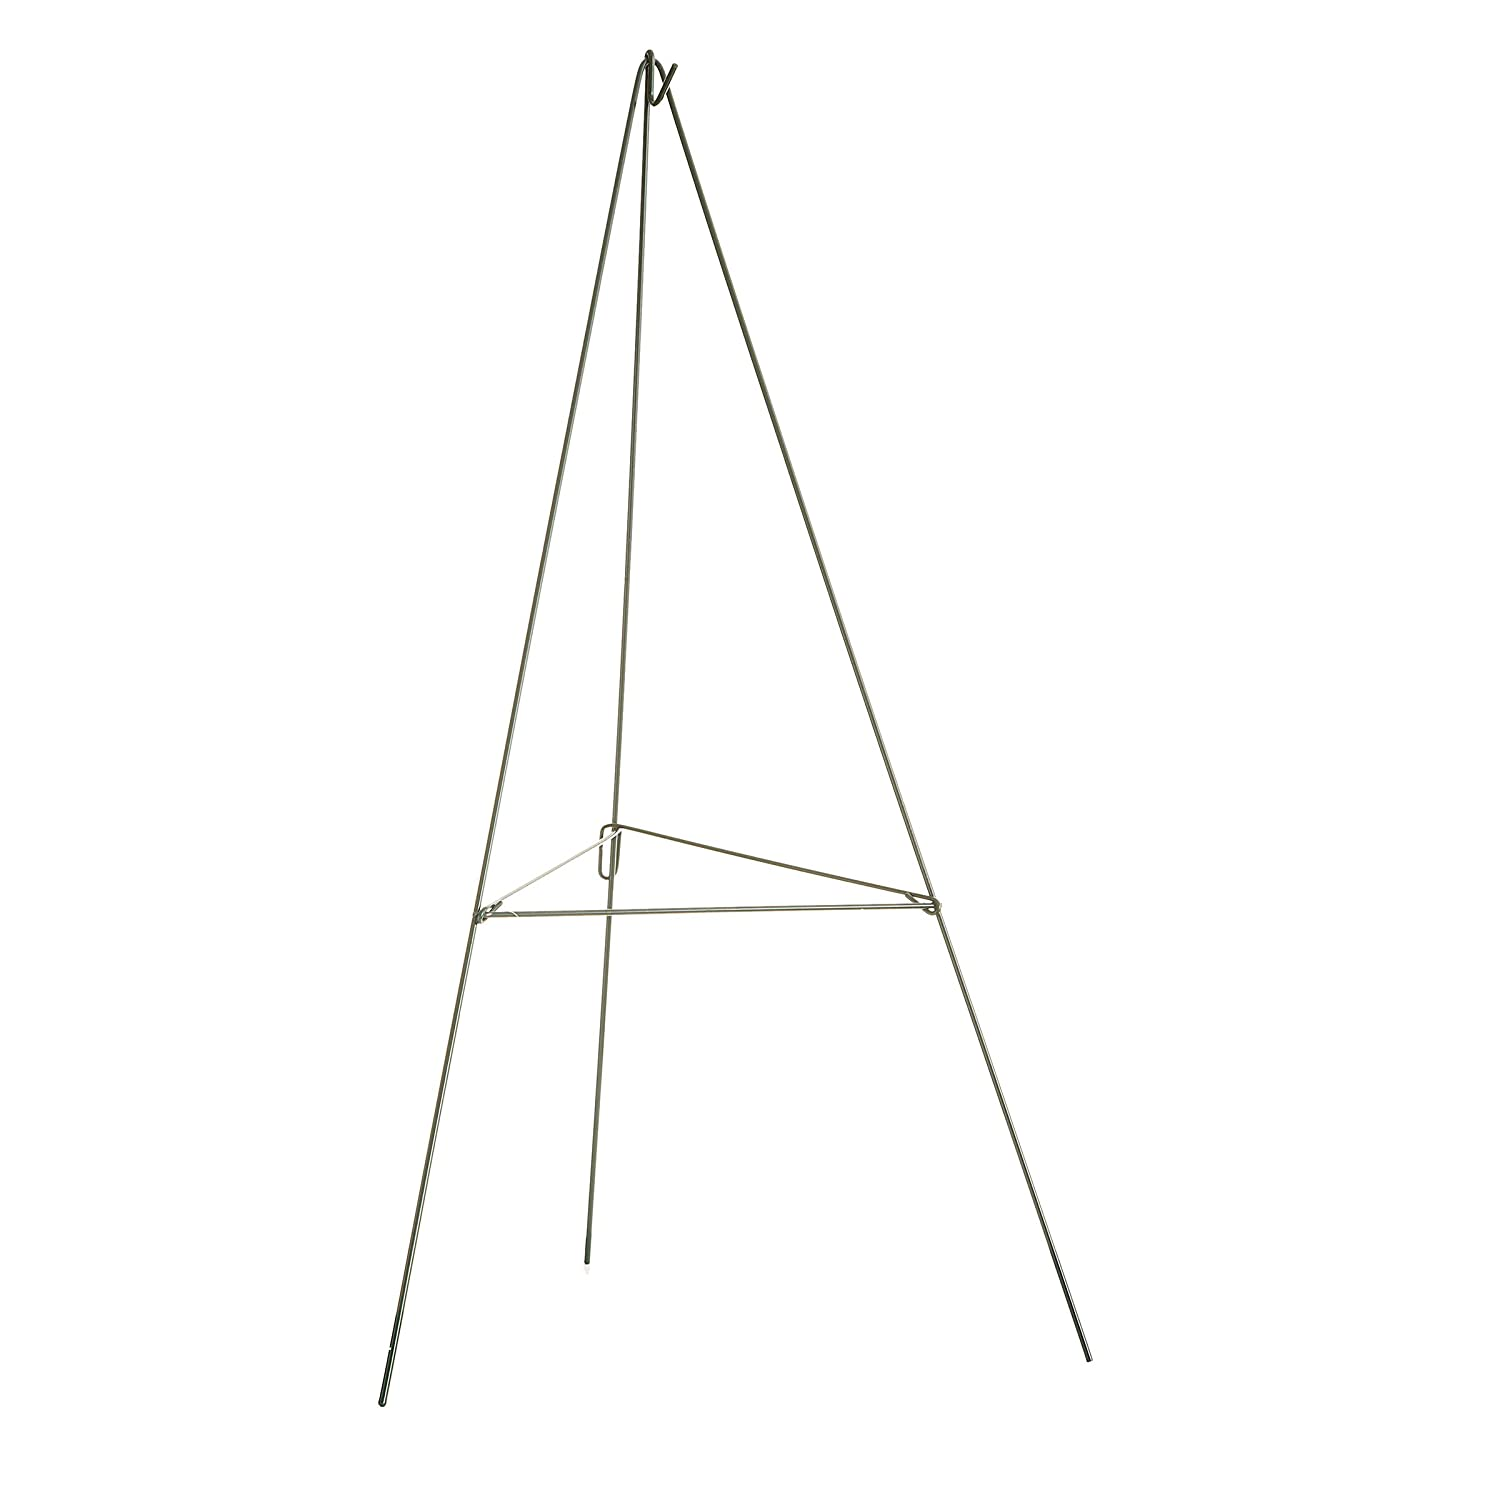 Darice AME27E Floral Metal Wire Easel 27 Green